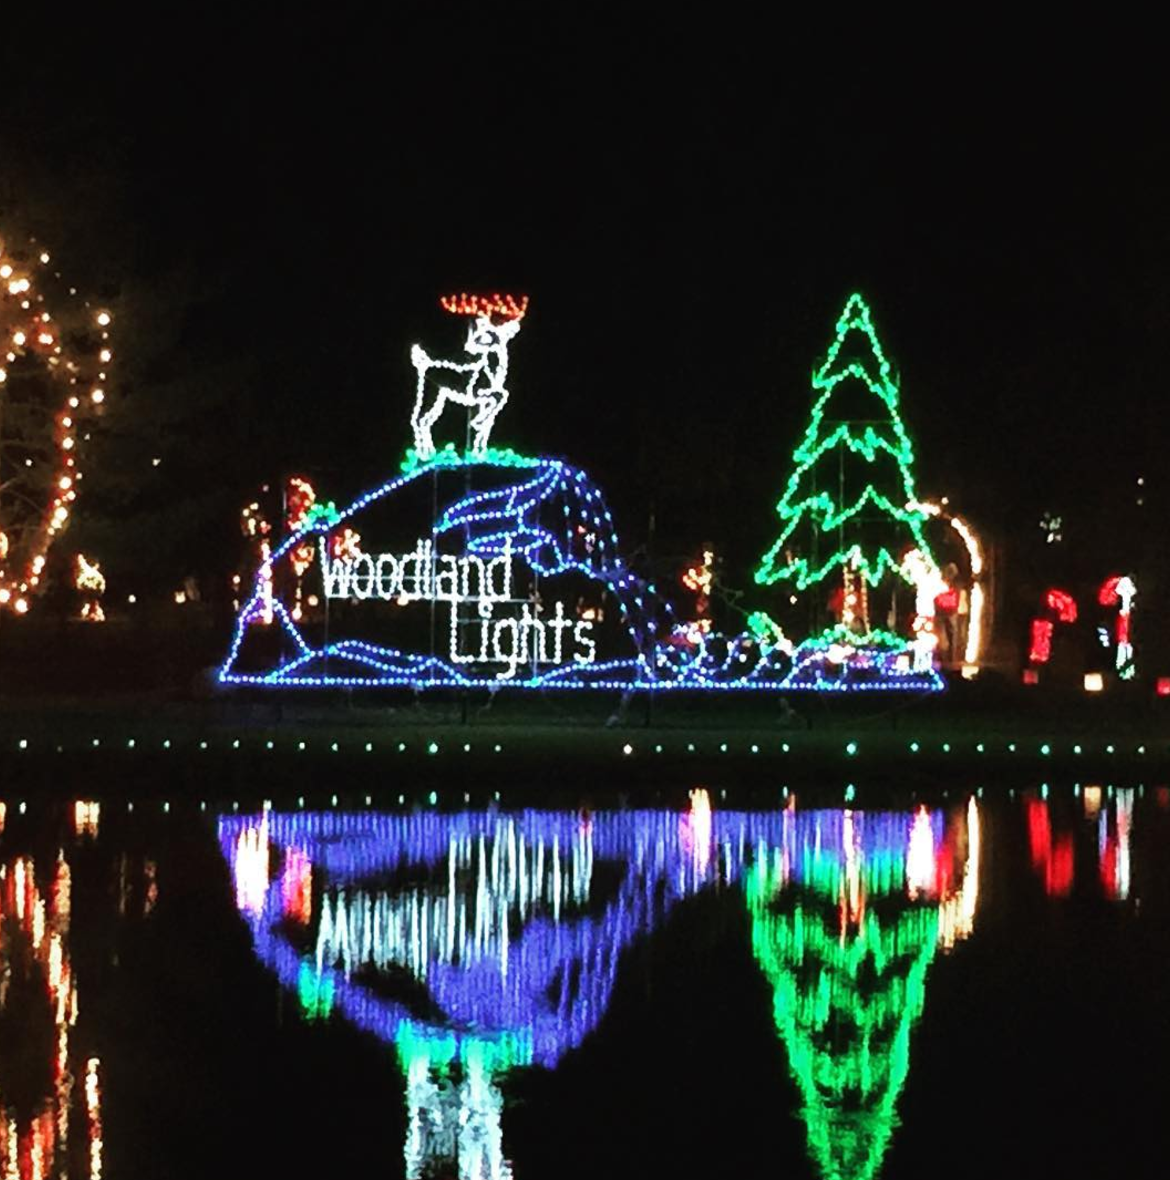 Photo by @onthegoprints at Woodland Lights in Dayton, Ohio